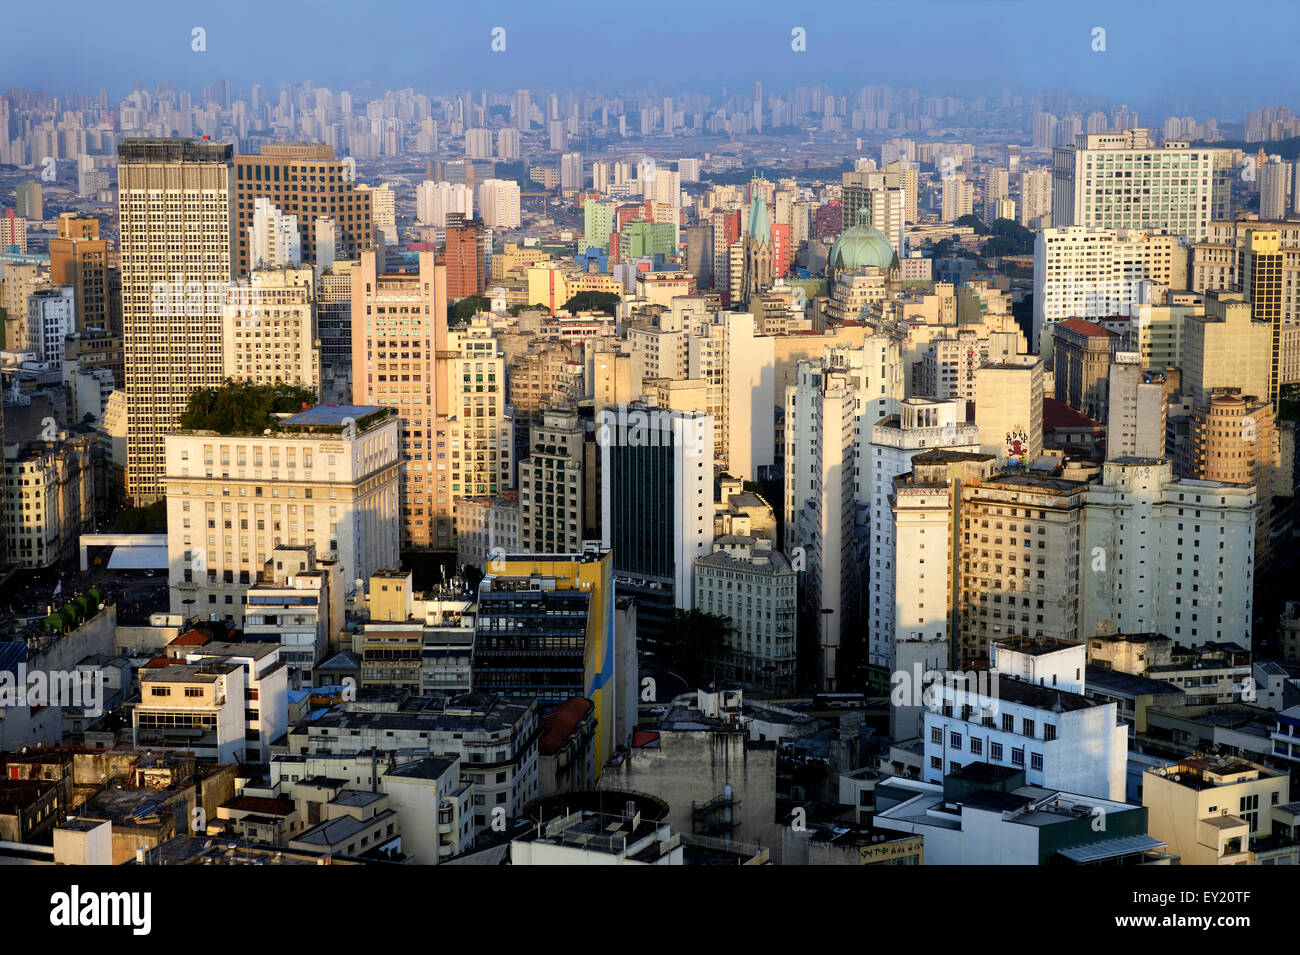 Cityscape with skyscrapers, São Paulo, Brésil Photo Stock